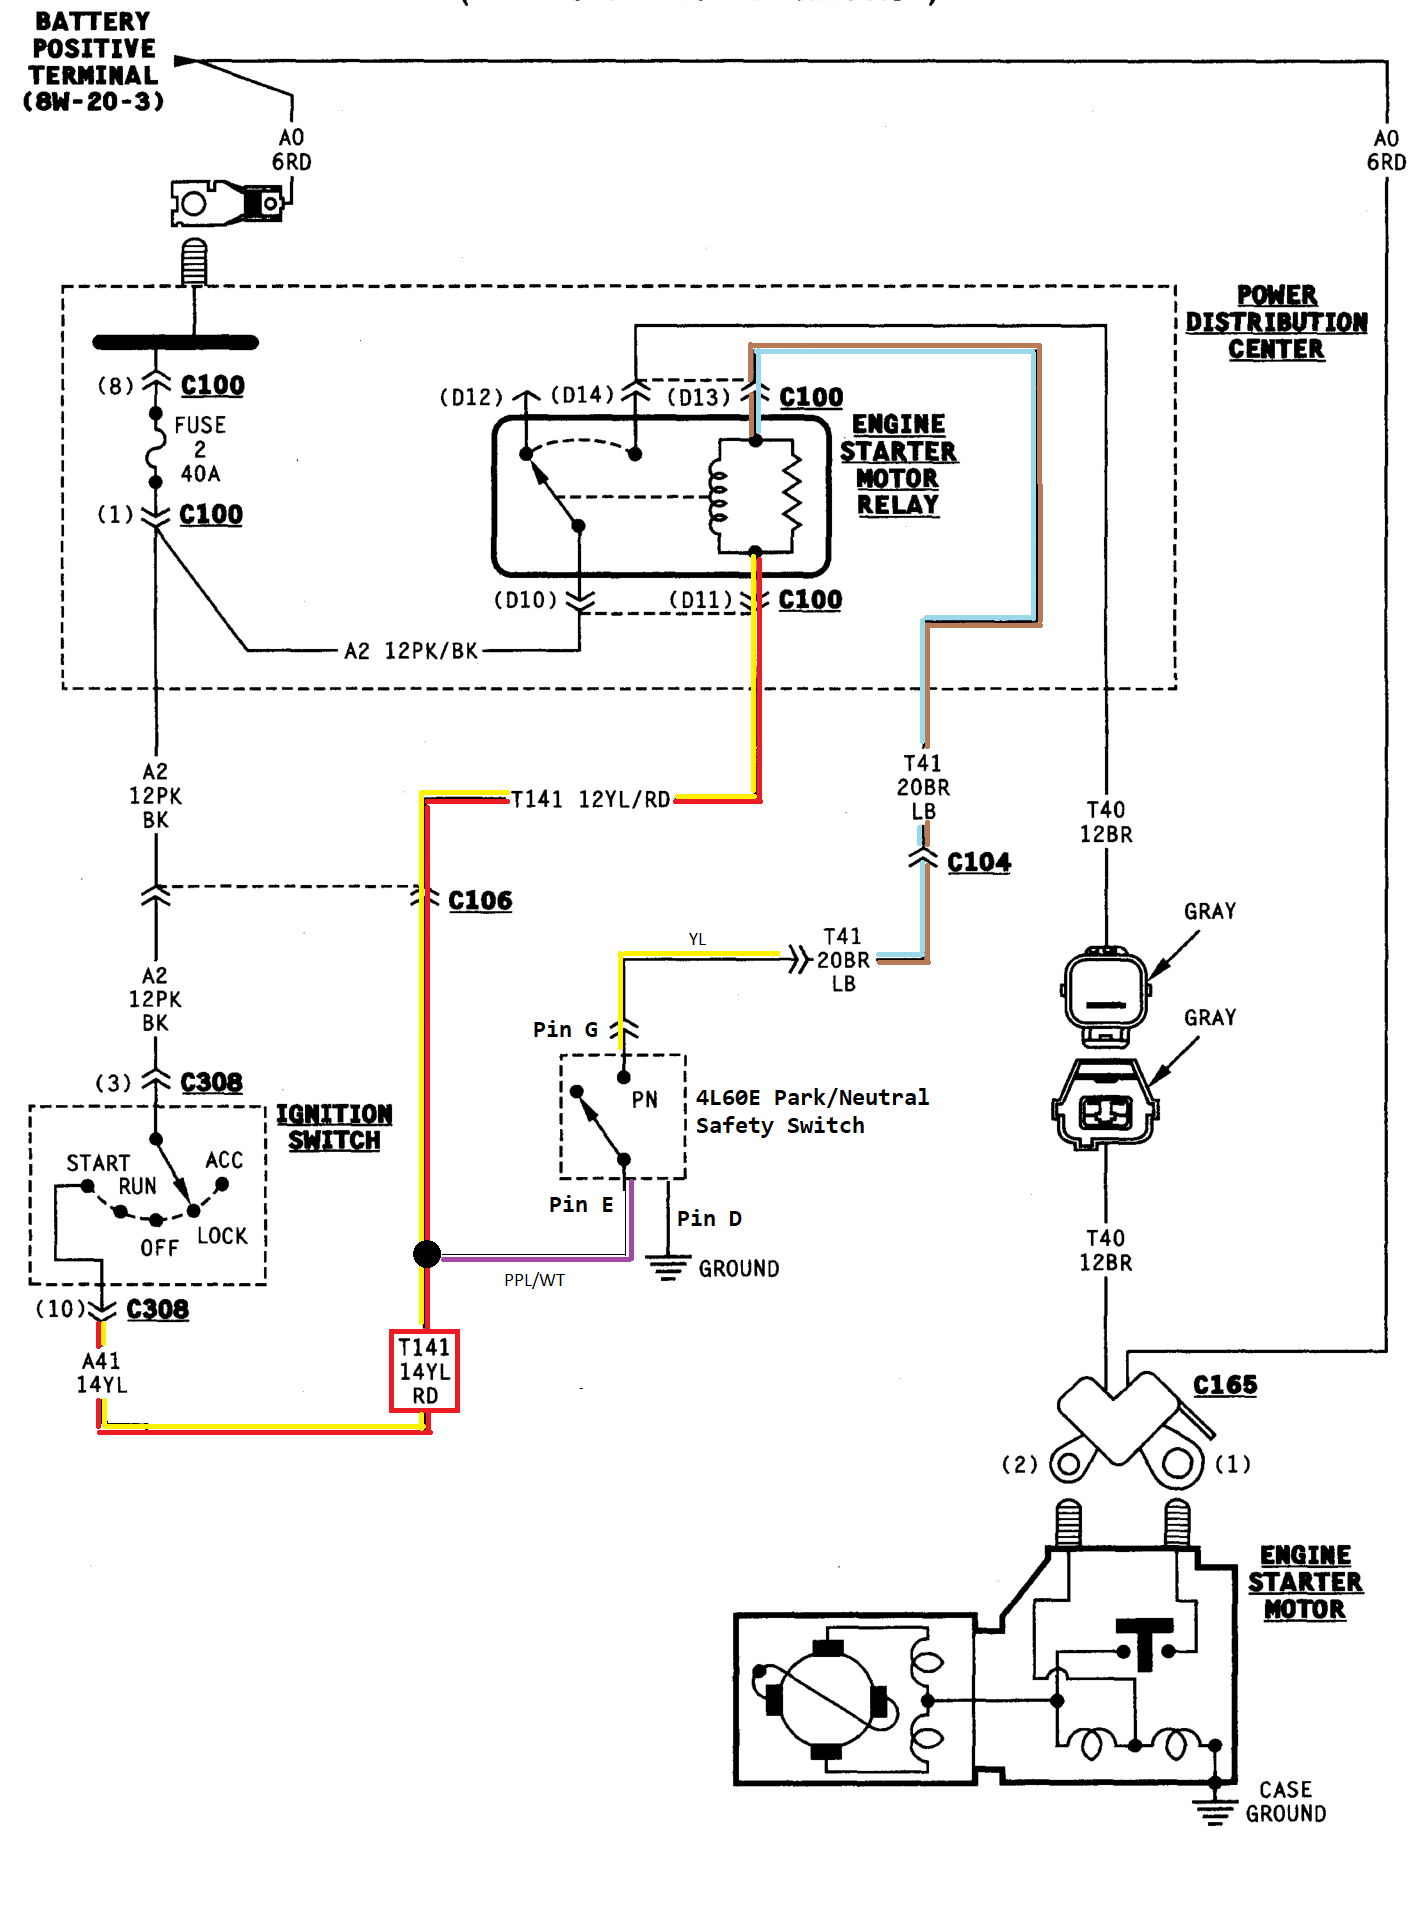 Chevy Silverado Neutral Safety Switch Wiring Diagram